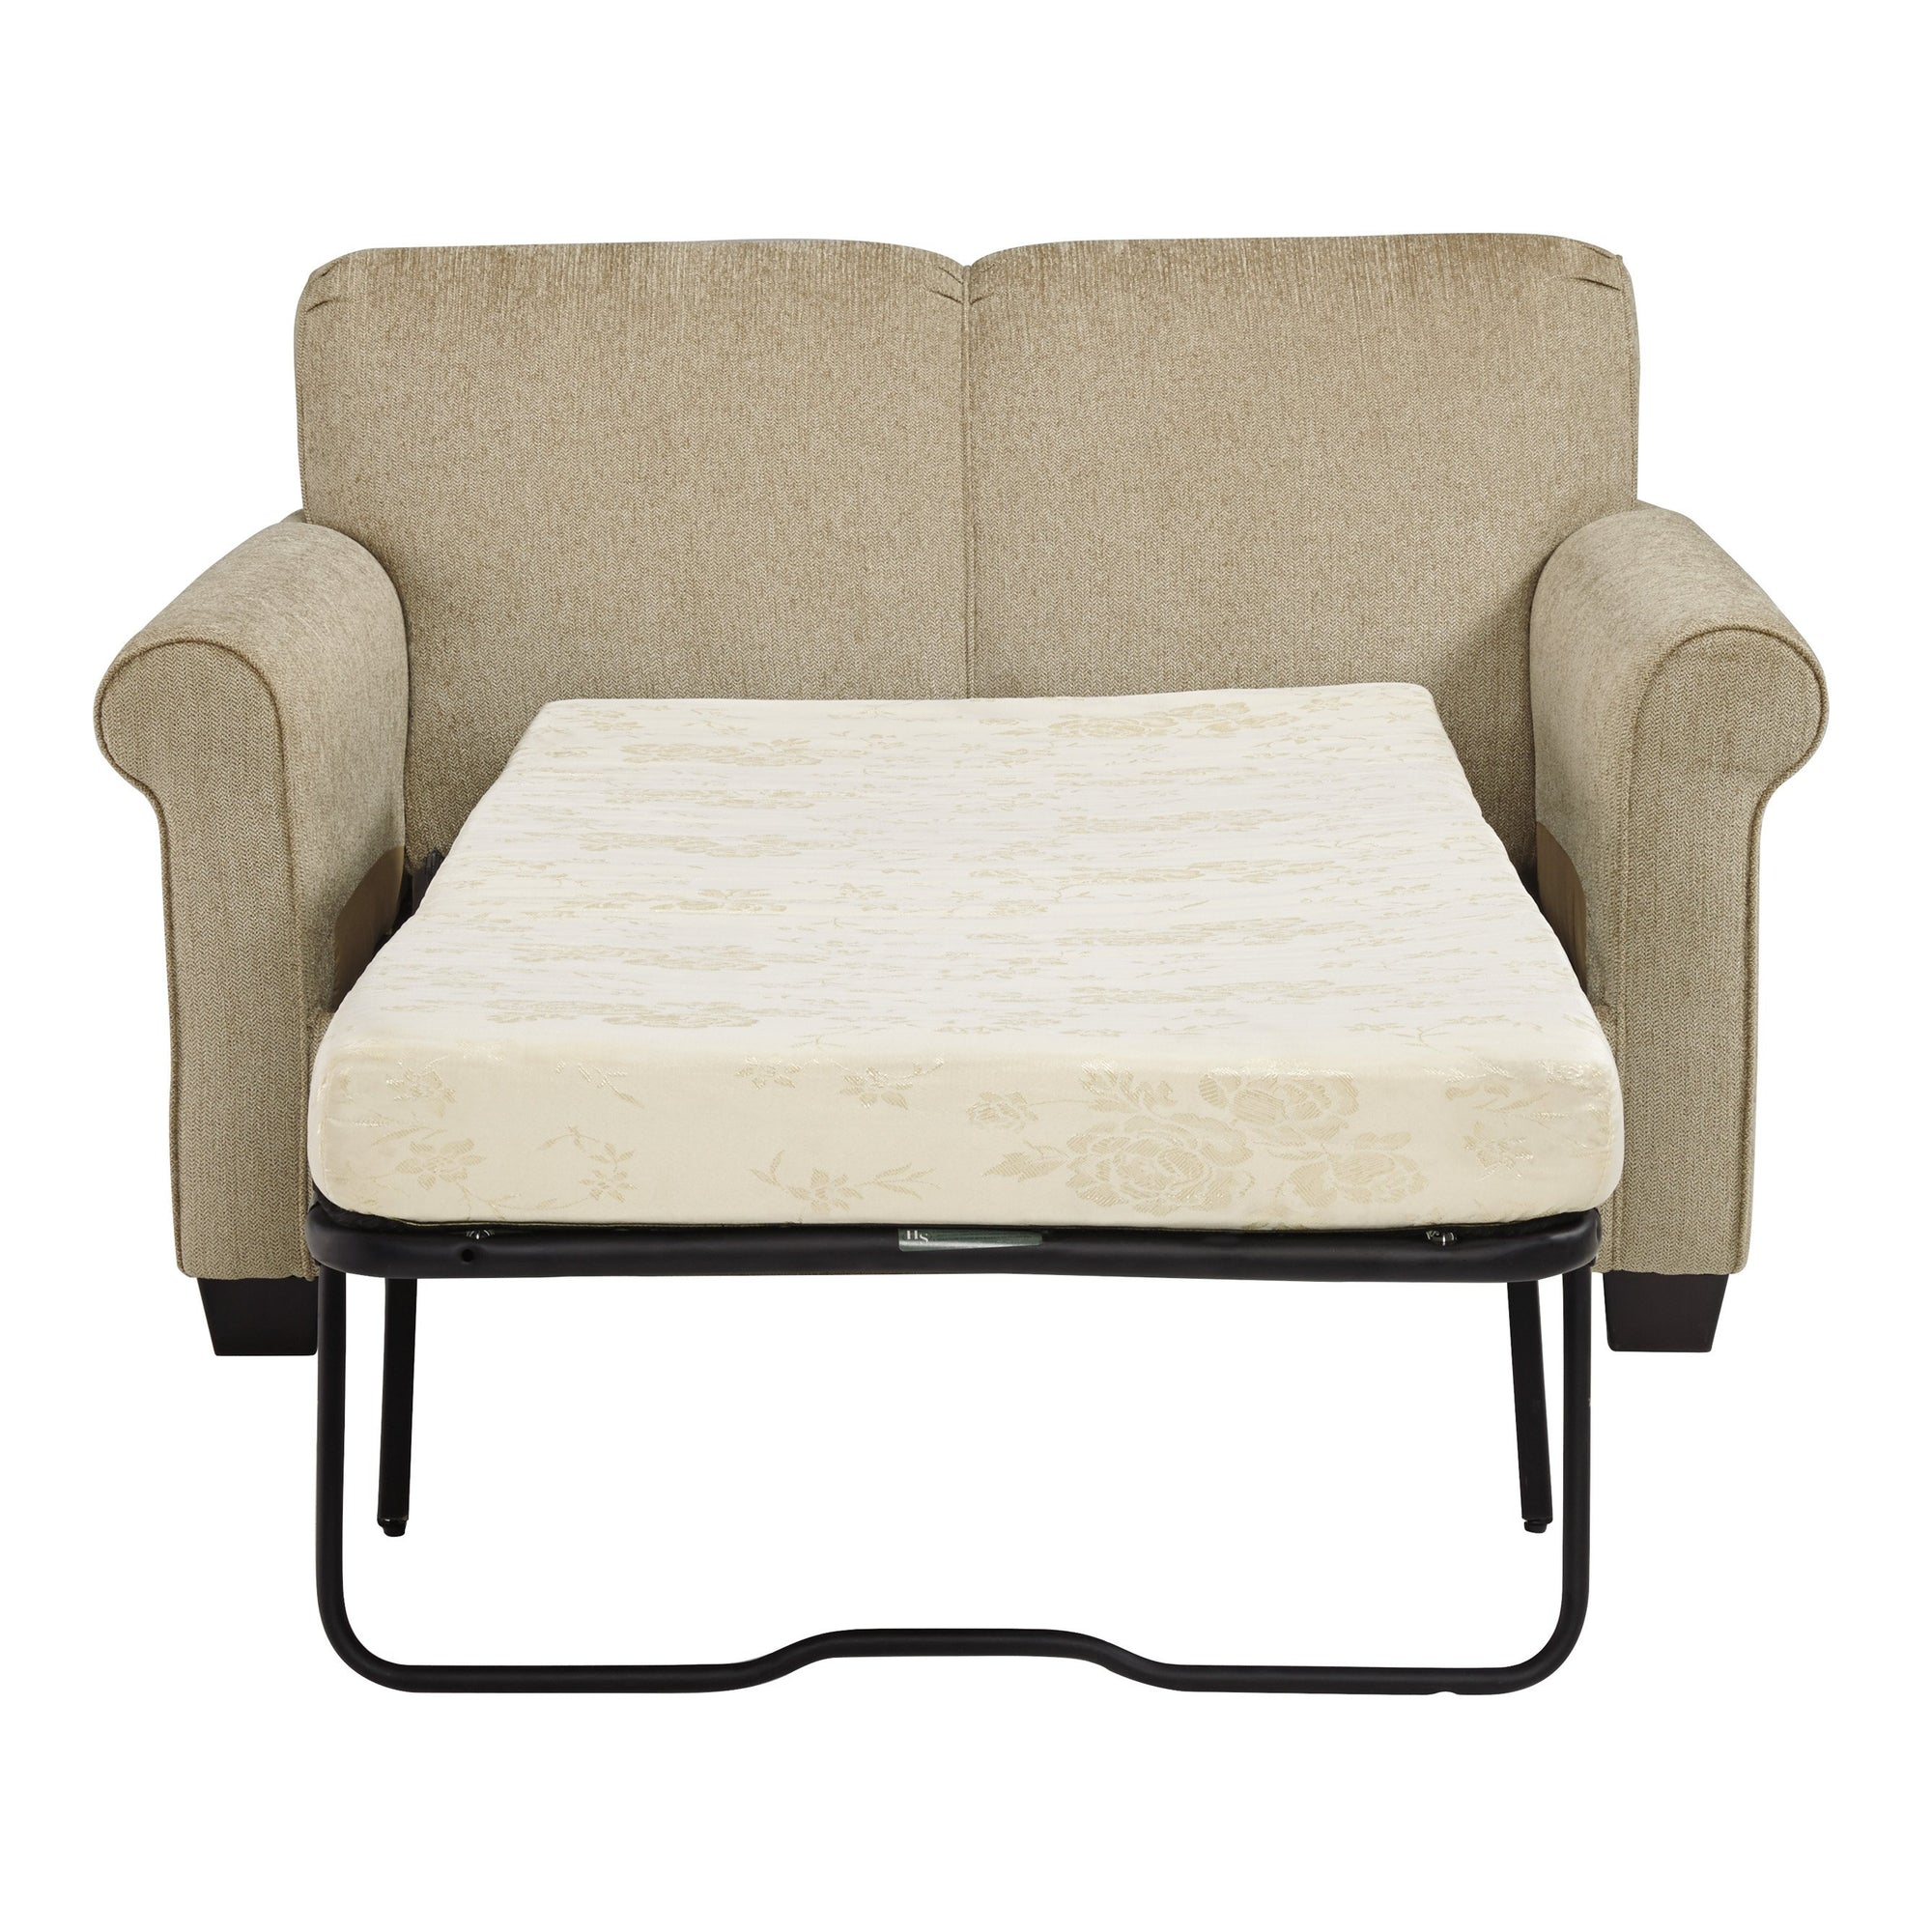 Cansler Grain Twin Sofa Sleeper